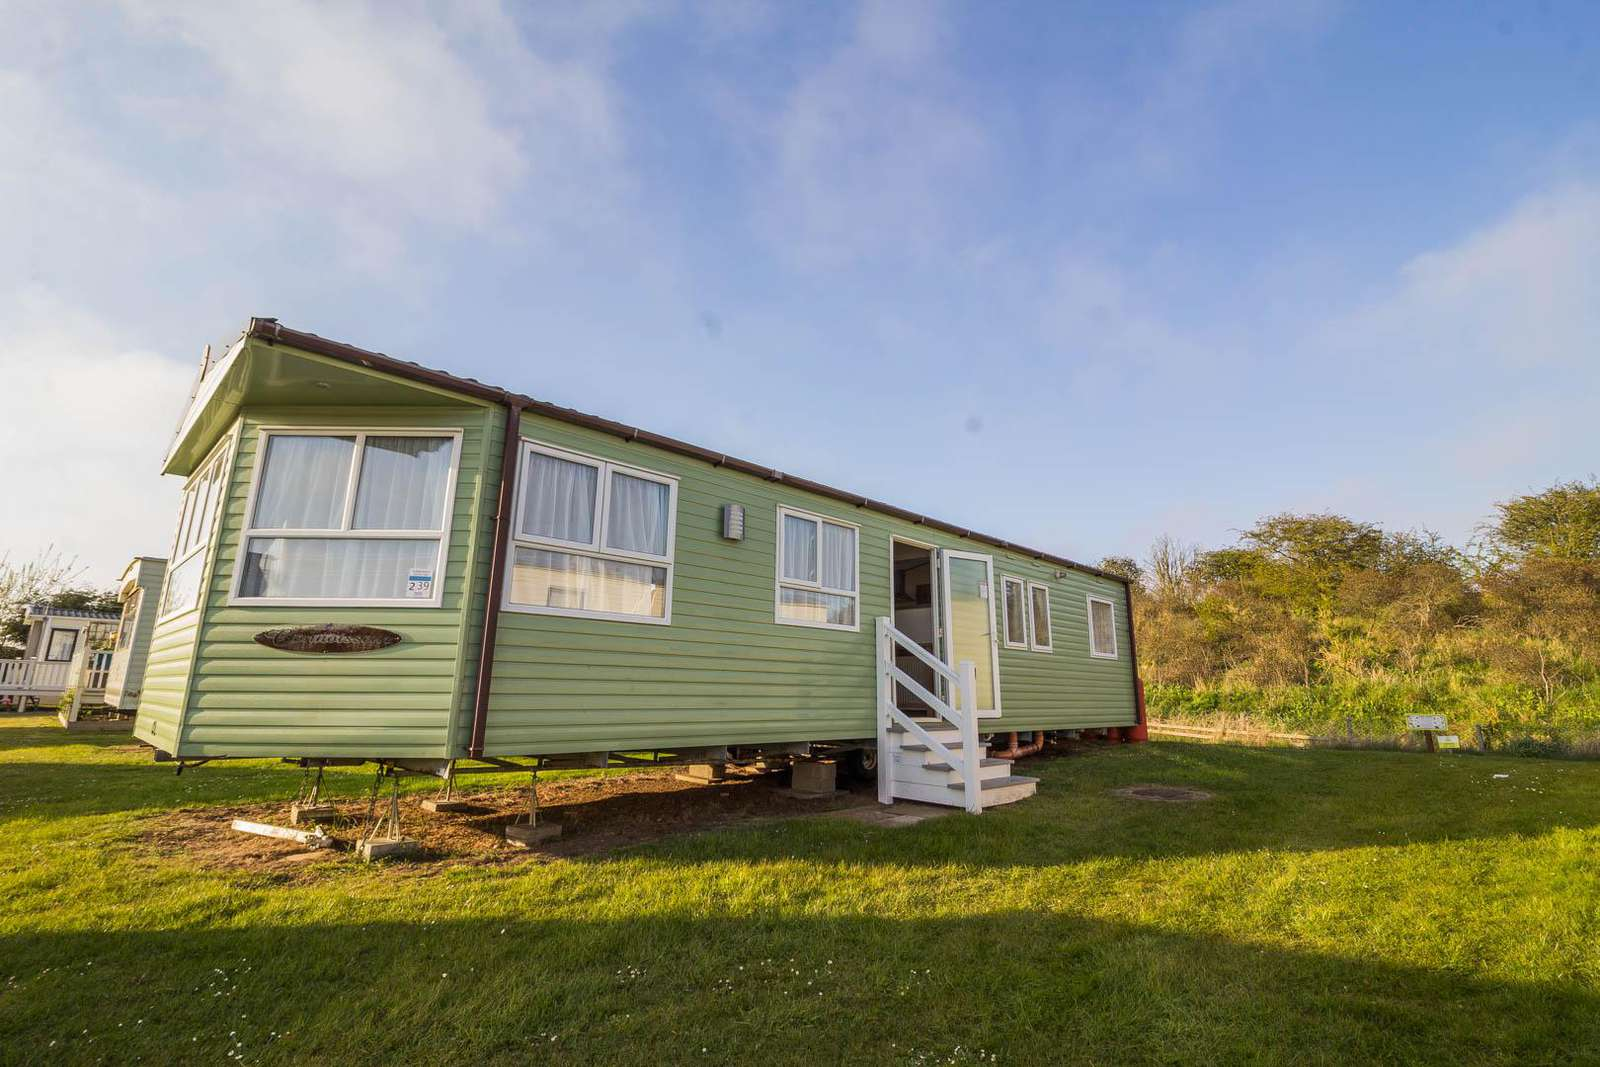 35239KD – Kingfisher Drive area, 3 bed, 8 berth caravan near to amenities. Ruby rated. - property